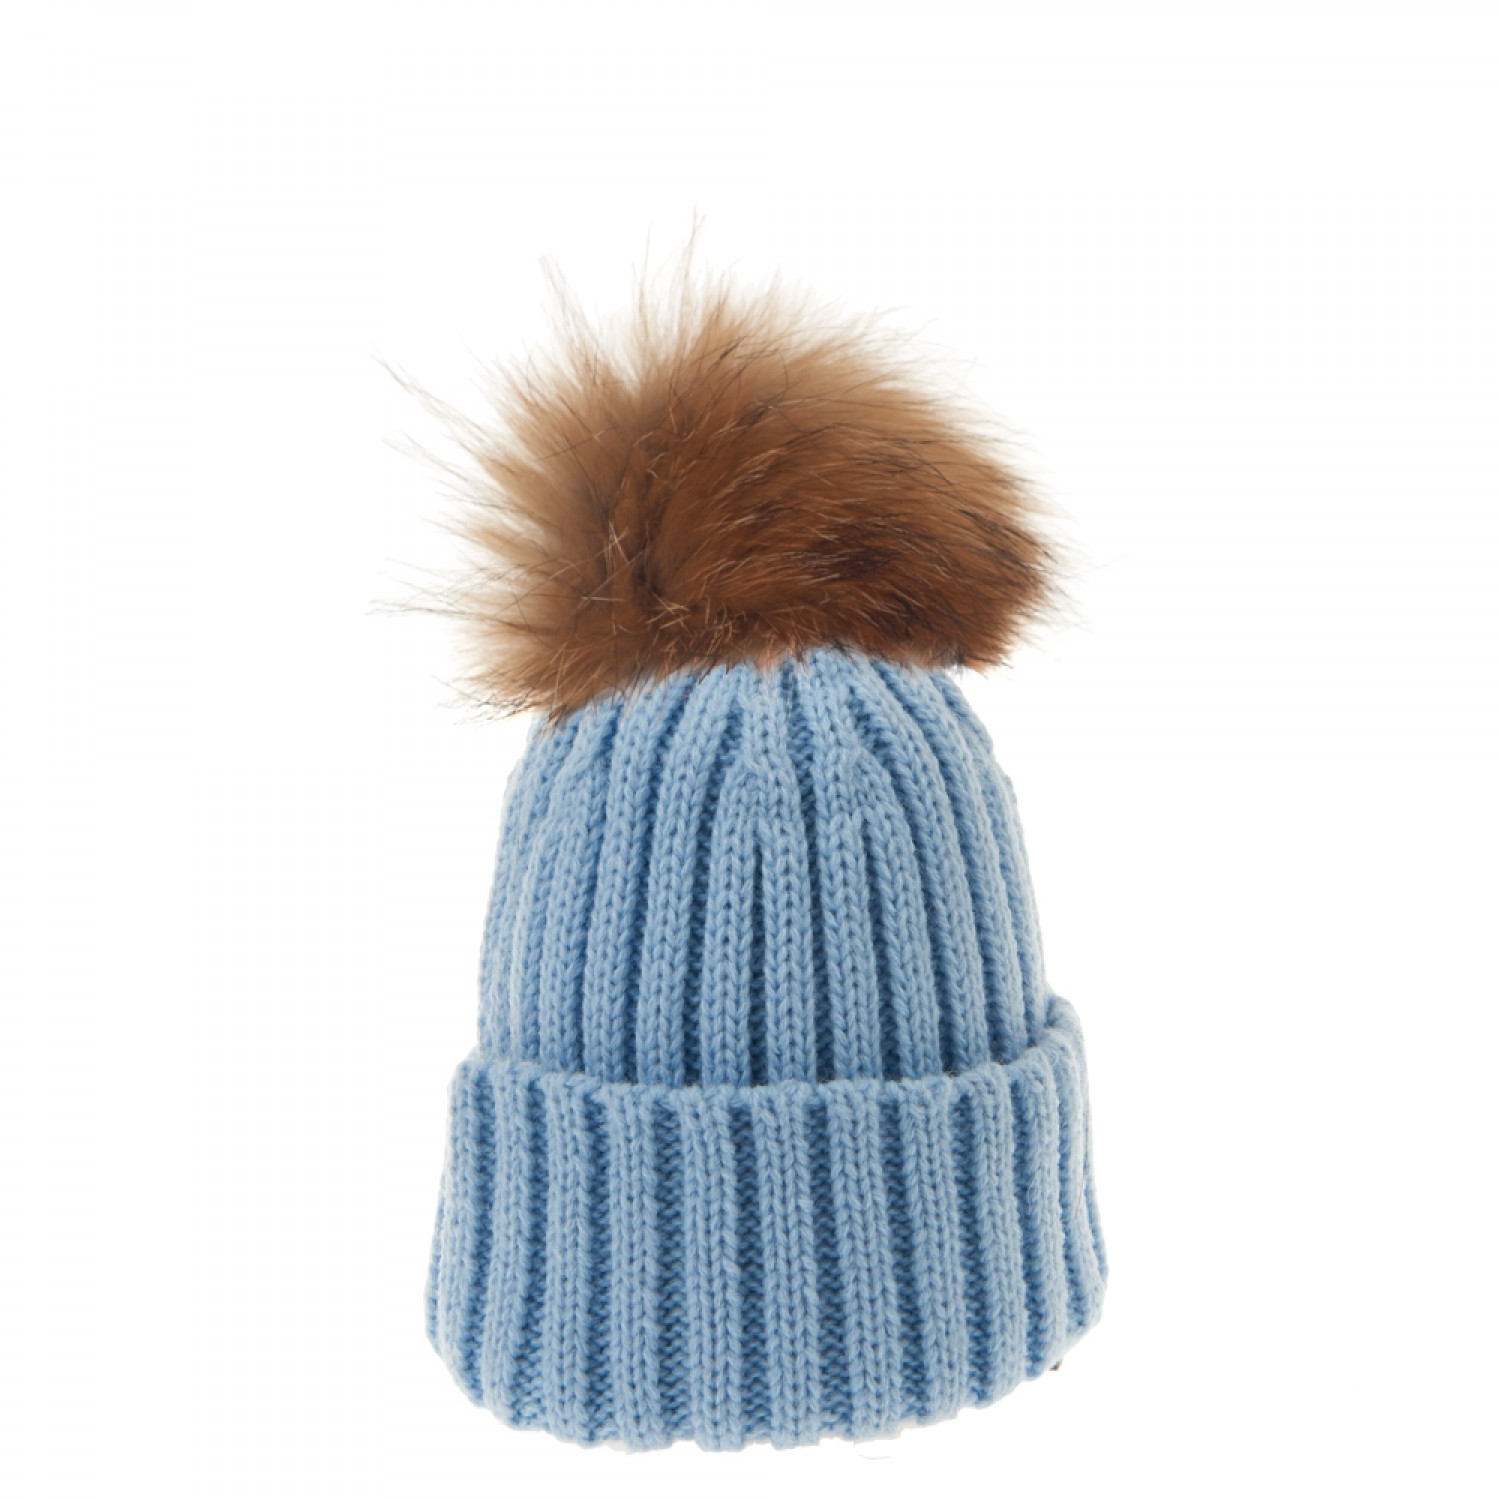 Warm bobble hat in pale blue with a detachable pom pom  c3f599774063